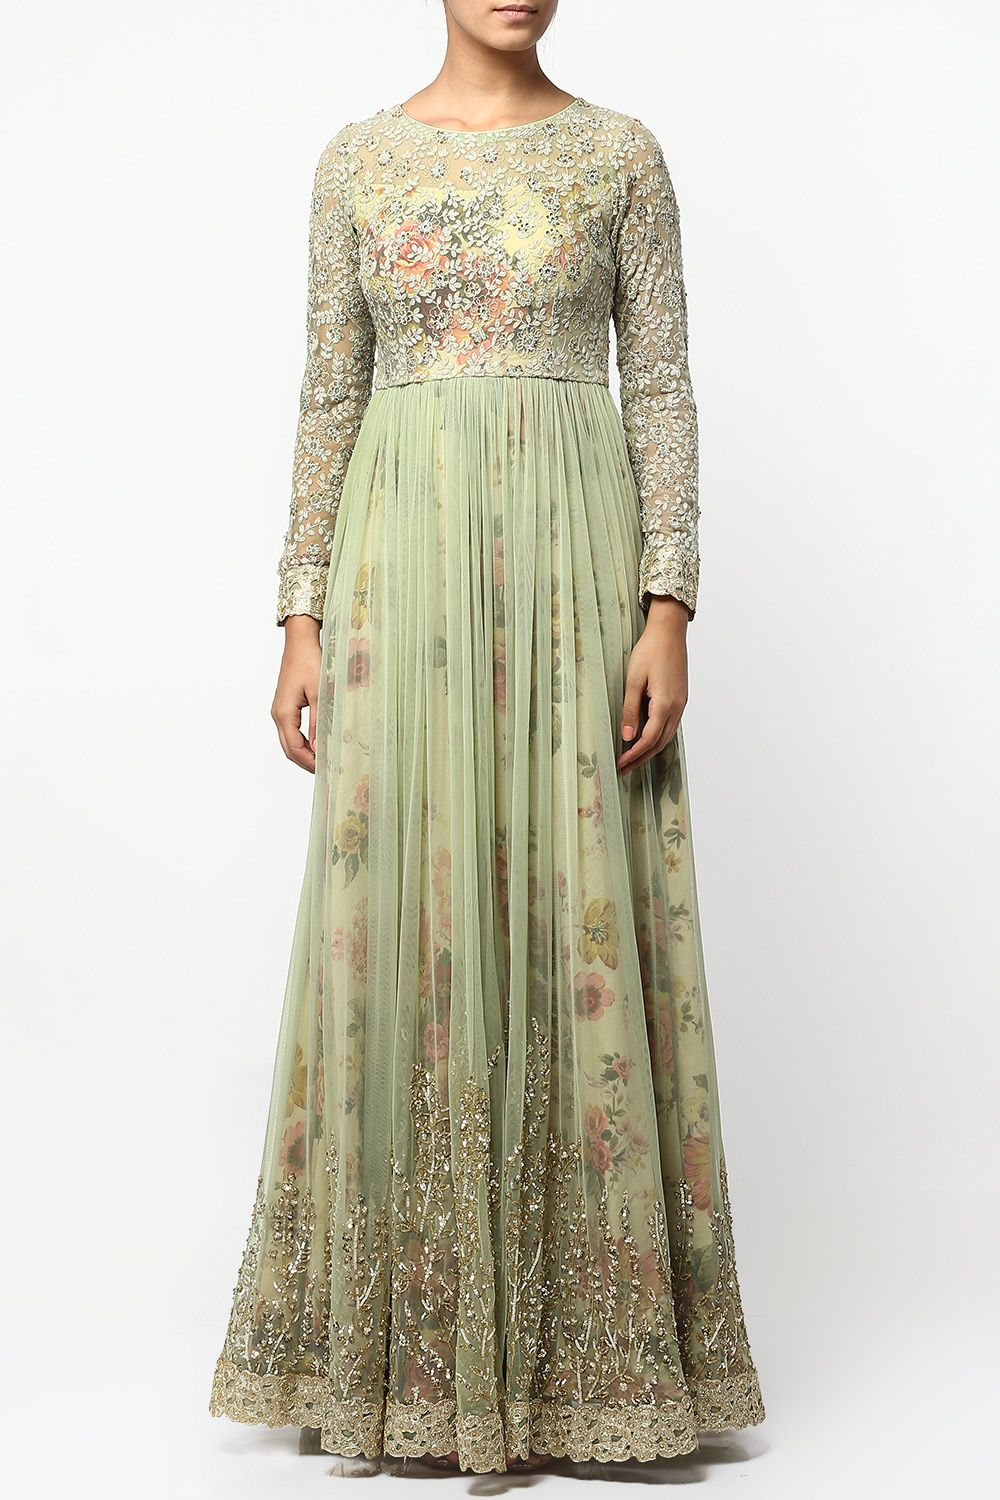 Featuring a mint green floral print floor length cotton anarkali dress with a matching net front slit overlay highlighted with sequin embroidered branches around the hem and appliqued lace border. It has a sequin and thread embroidered jaal net bodice and sleeves with applique lace around the cuffs.  Fabric: Cotton, Net  Care Instructions: Dryclean only.